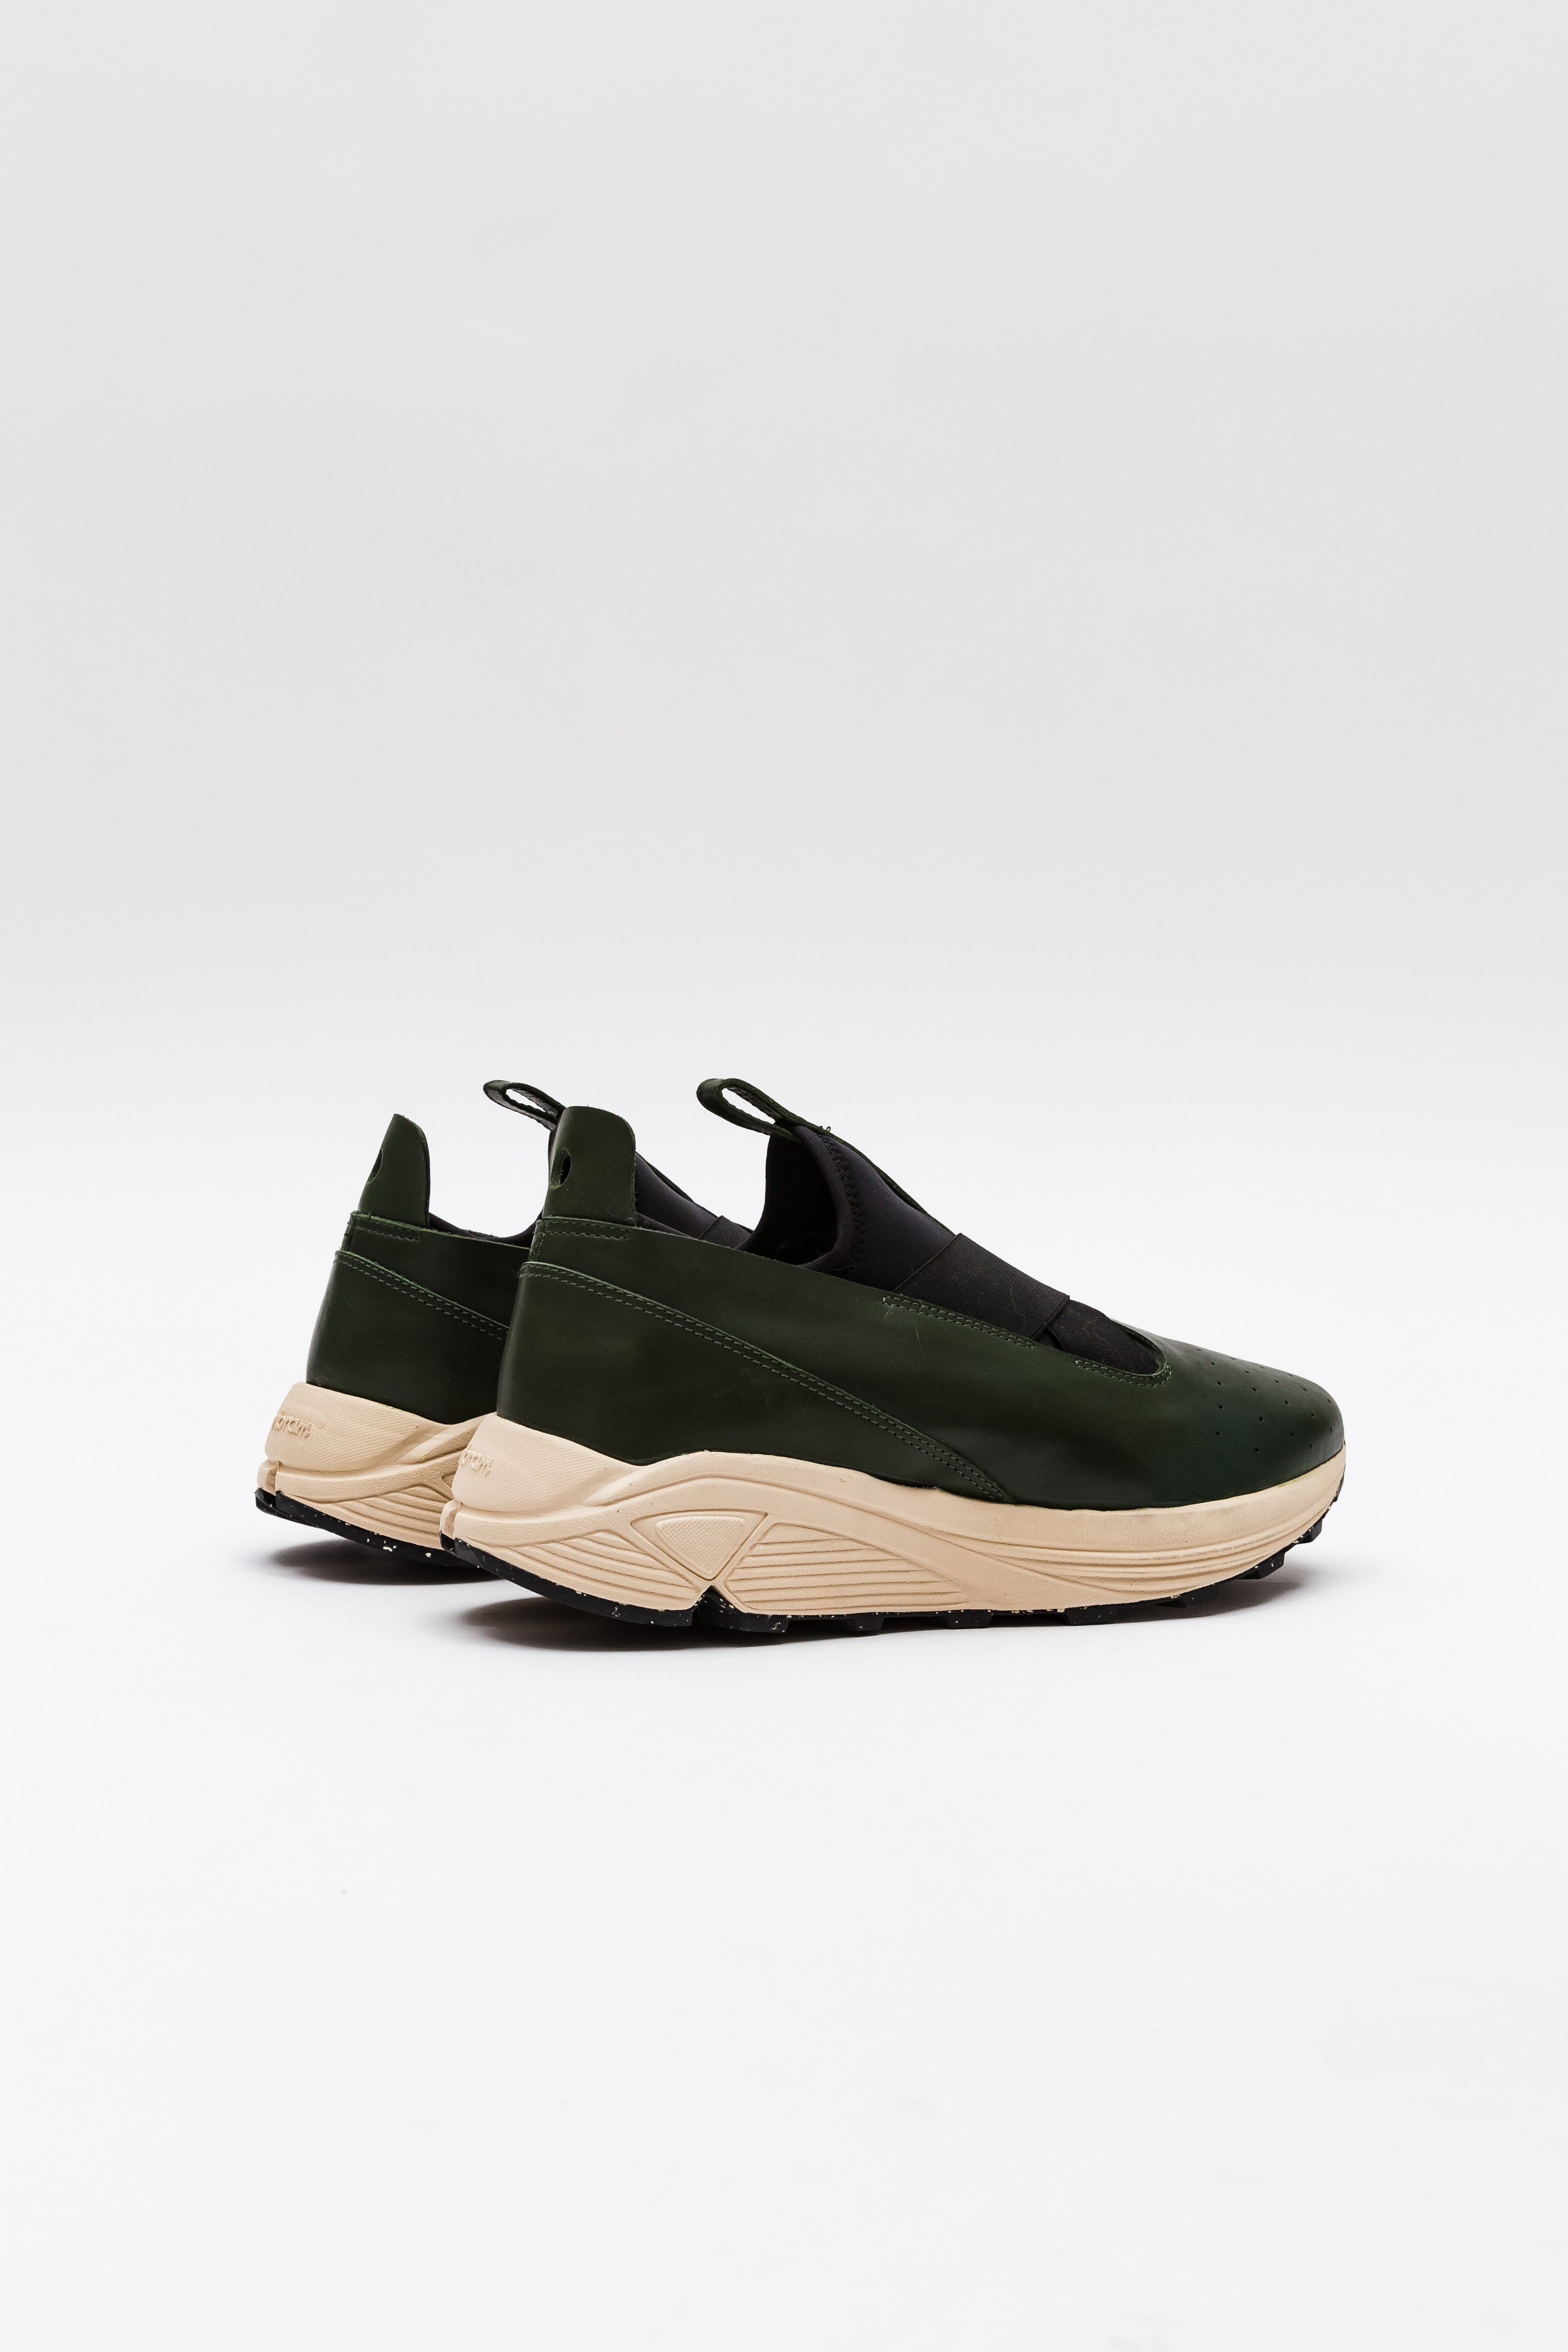 Marquez Low-Top, Green & Cream